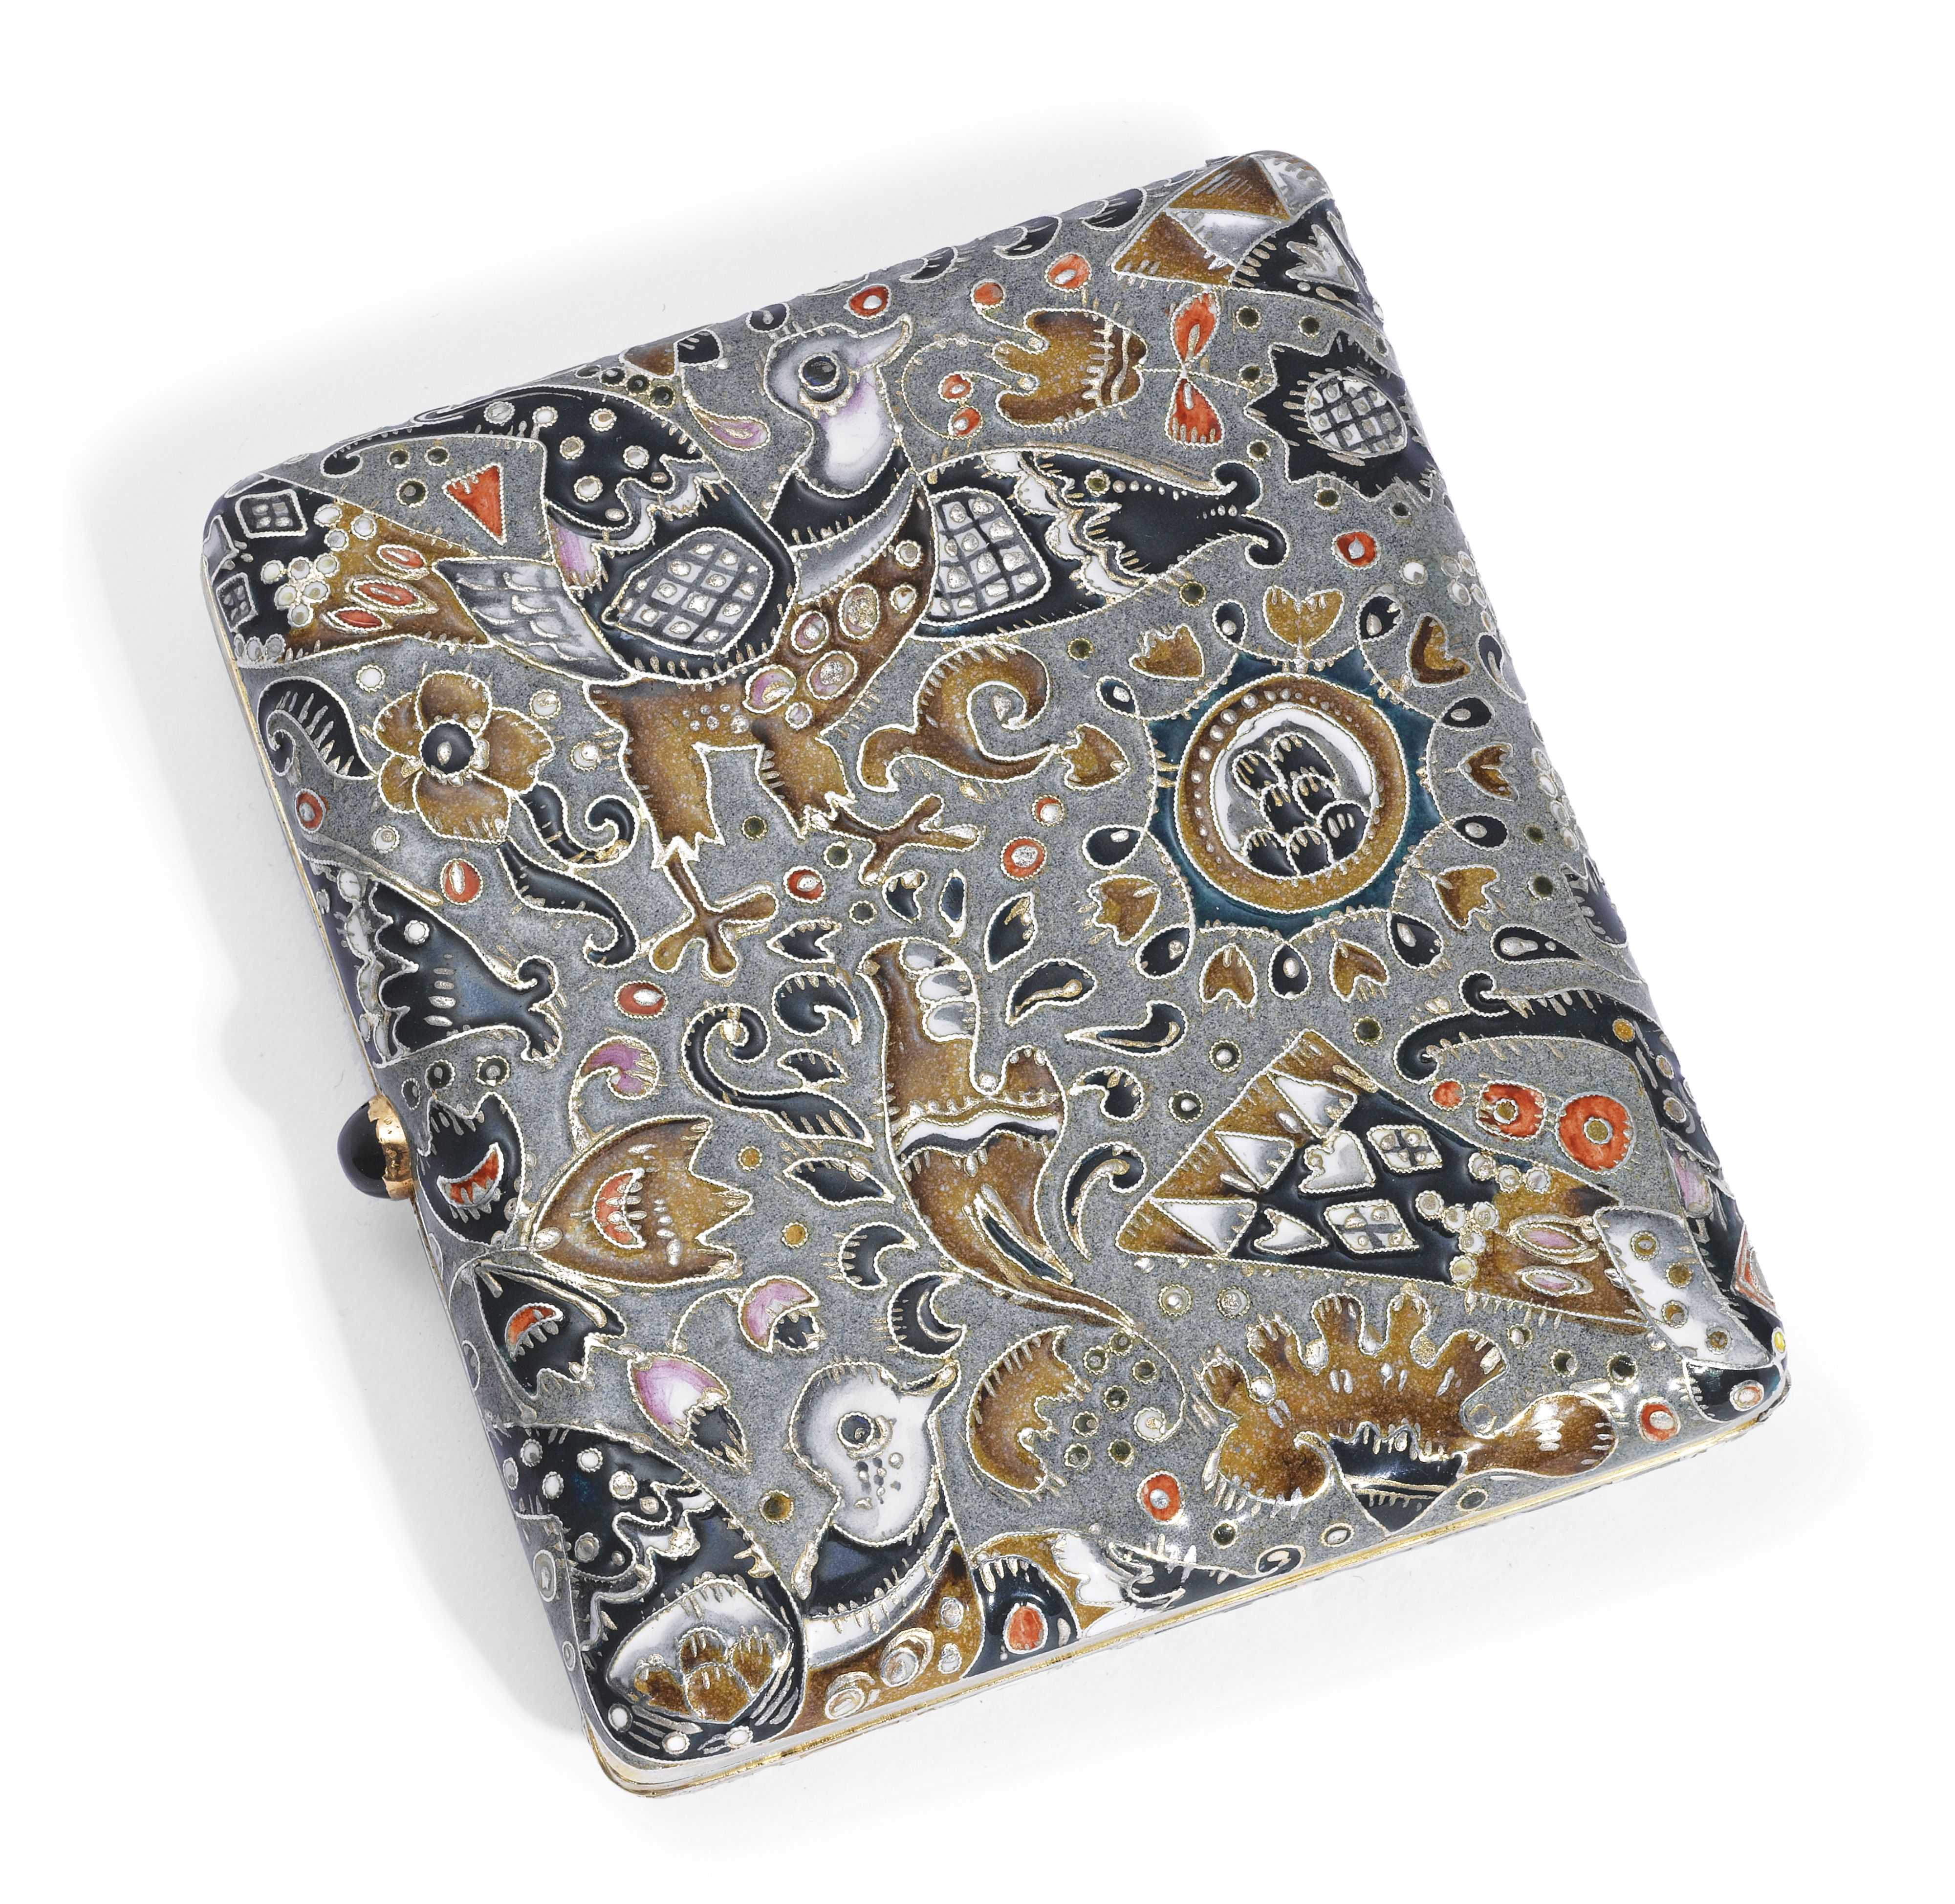 A FABERGÉ GILDED SILVER AND SHADED ENAMEL CIGARETTE CASE, MOSCOW, CIRCA 1910 of rounded rectangular form, profusely enameled with fantastical figures of birds in pearl grey, rose, coral, black, and brown against a duck's egg gray ground, the surfaces heightened with applied gilded and silver wires, the interior gild, with cabochon blue hardstone thumbpiece marked K. Fabergé with Imperial warrant overstriking maker's mark of Fedor Rückert and with 88 standard.